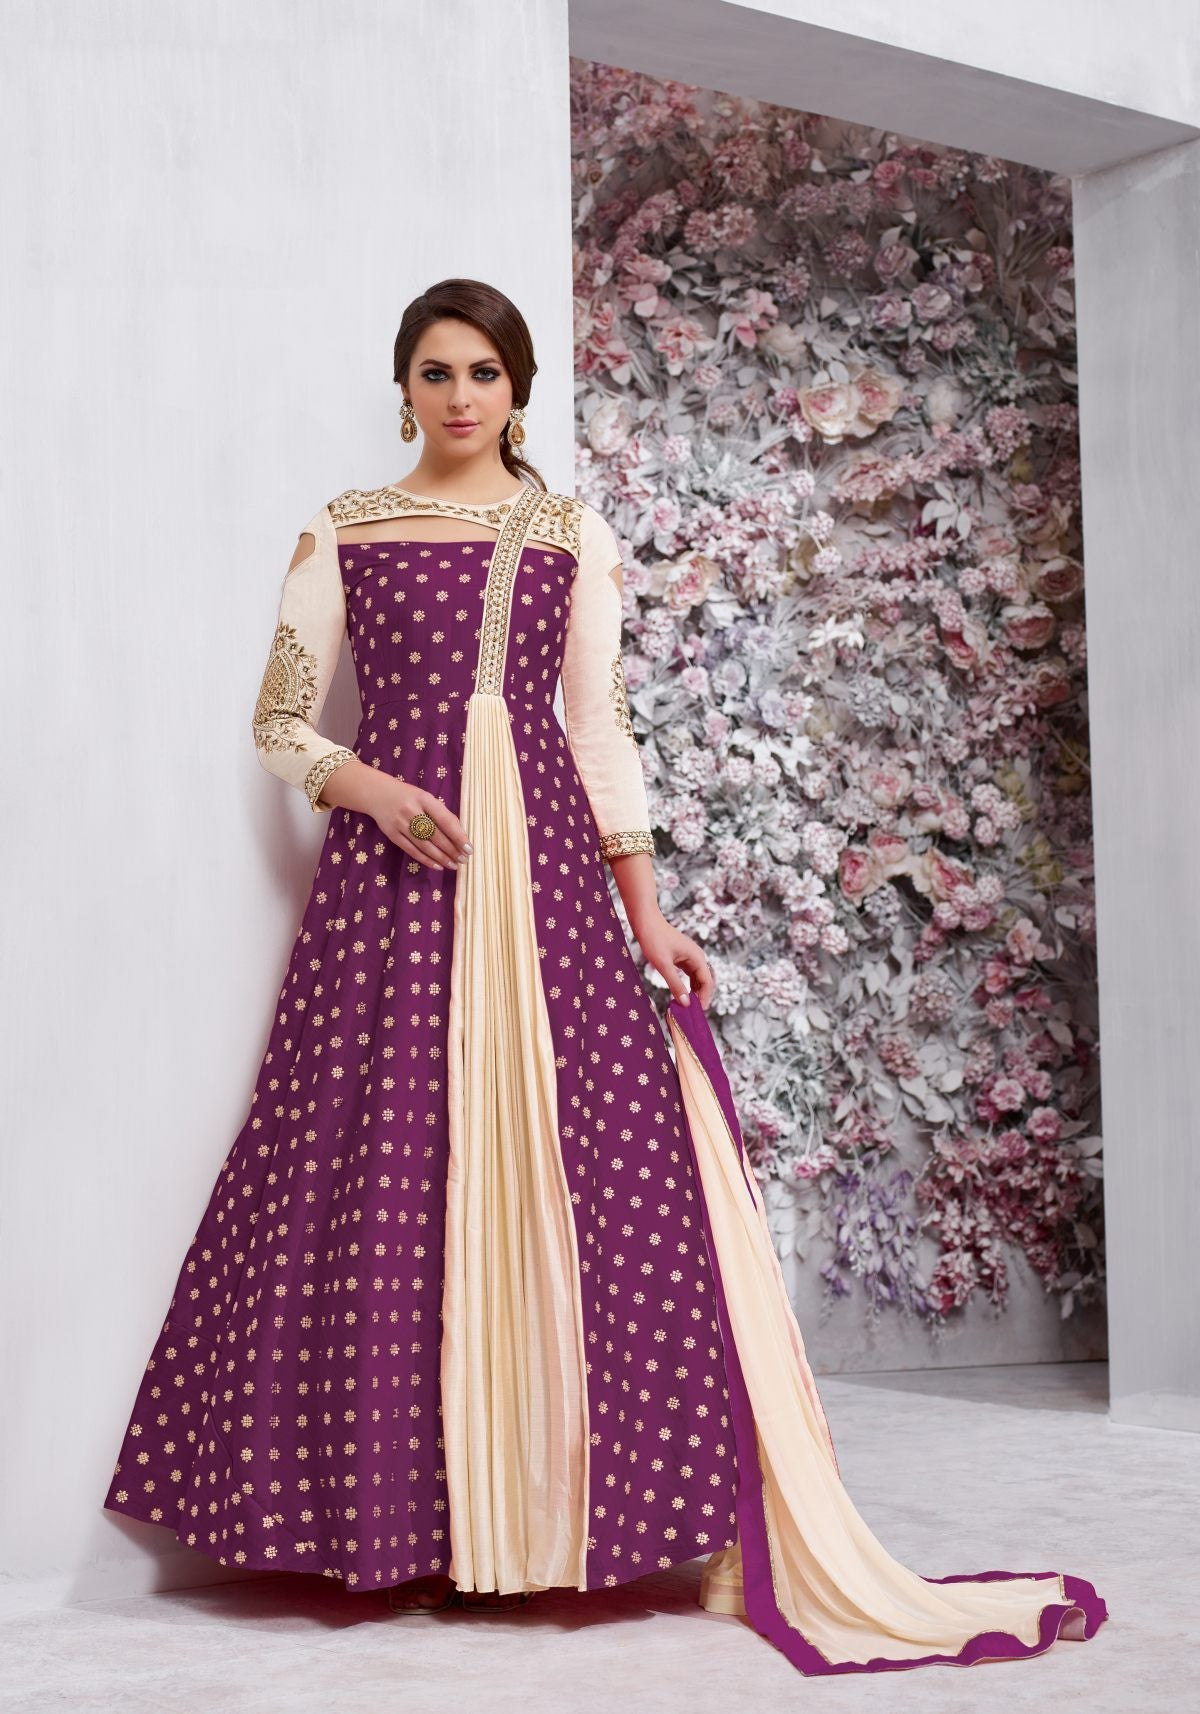 Exclusive Trendy Salwar-kameez 30214